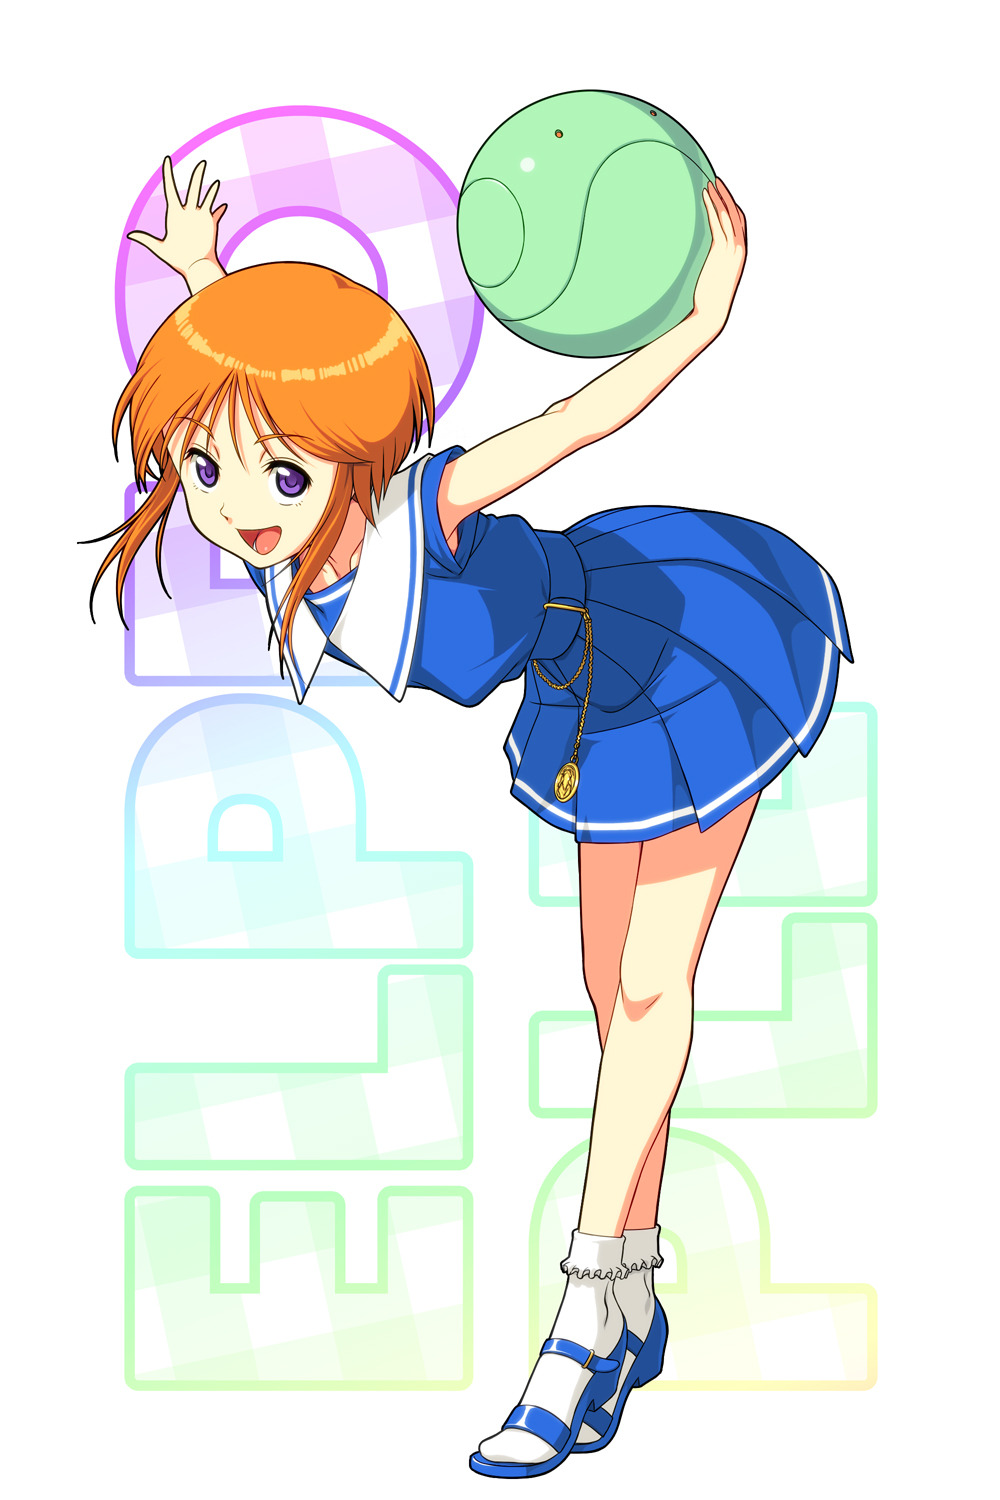 1girl bobby_socks bow character_name collarbone dress elpeo_puru exit_nothing full_body gundam gundam_zz haro highres looking_at_viewer open_mouth open_toe_shoes orange_hair outstretched_arms pocket_watch sailor_dress short_hair sidelocks socks standing violet_eyes watch